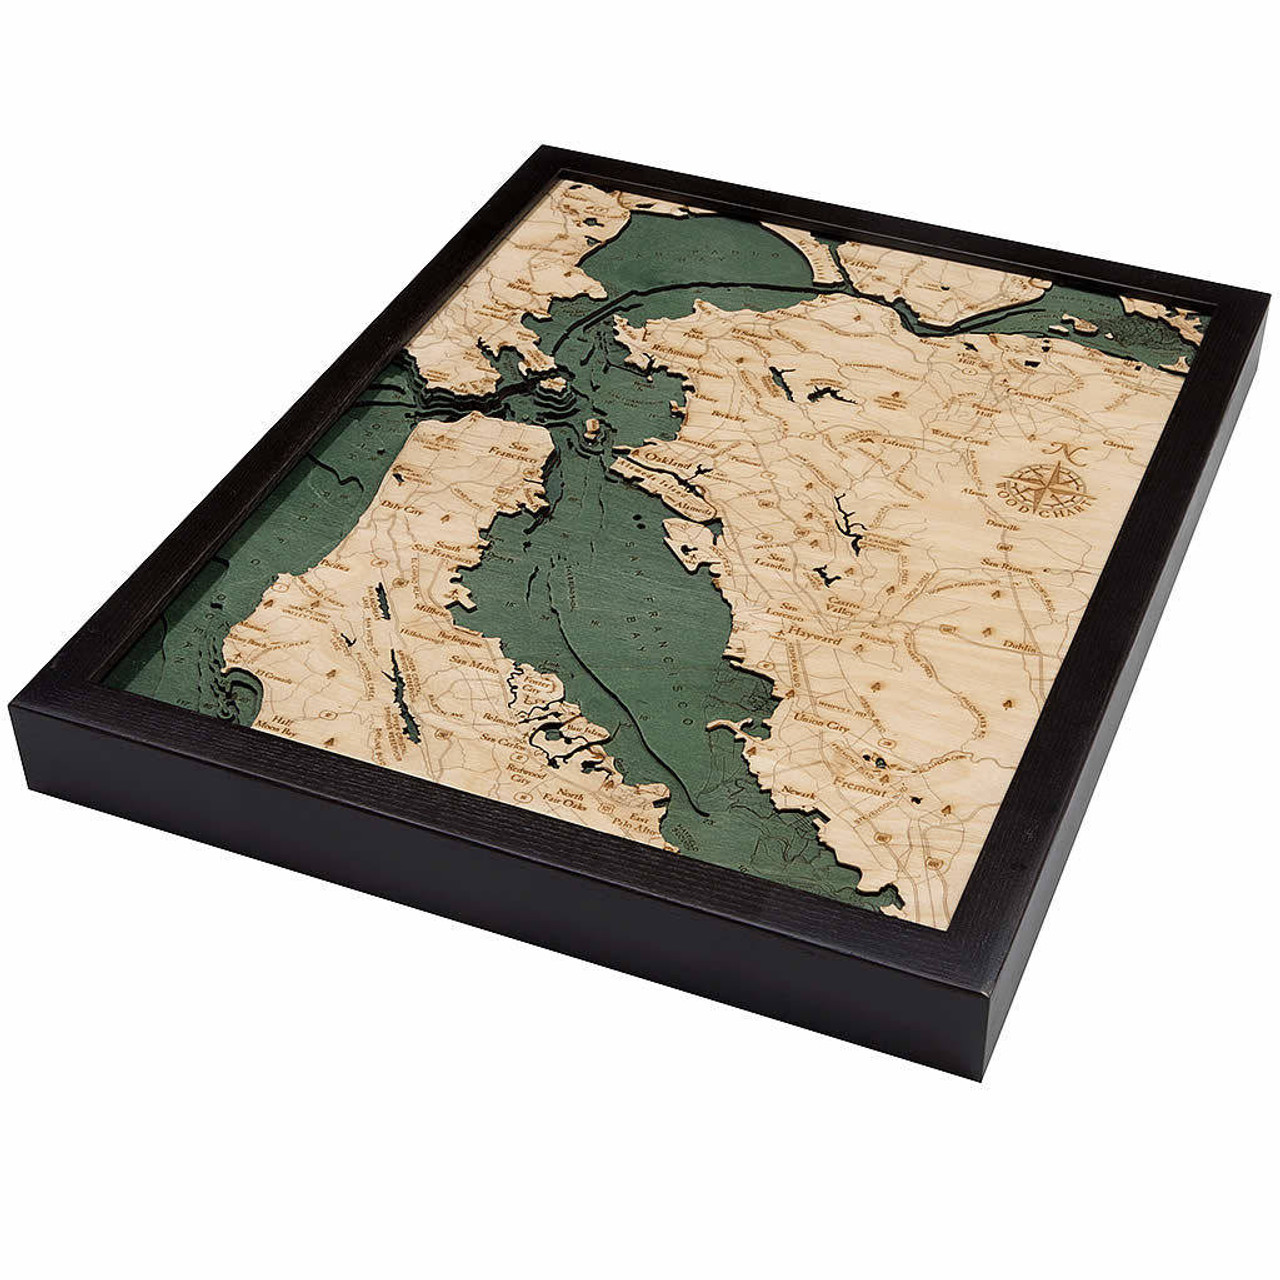 San Francisco Bay Area Small Nautical Wood Maps 3d Wall Decor This is the best video to get you familiar with the bay area map, the north bay cities, and all the affordable places to live near san francisco!#bayarea. san francisco bay area small